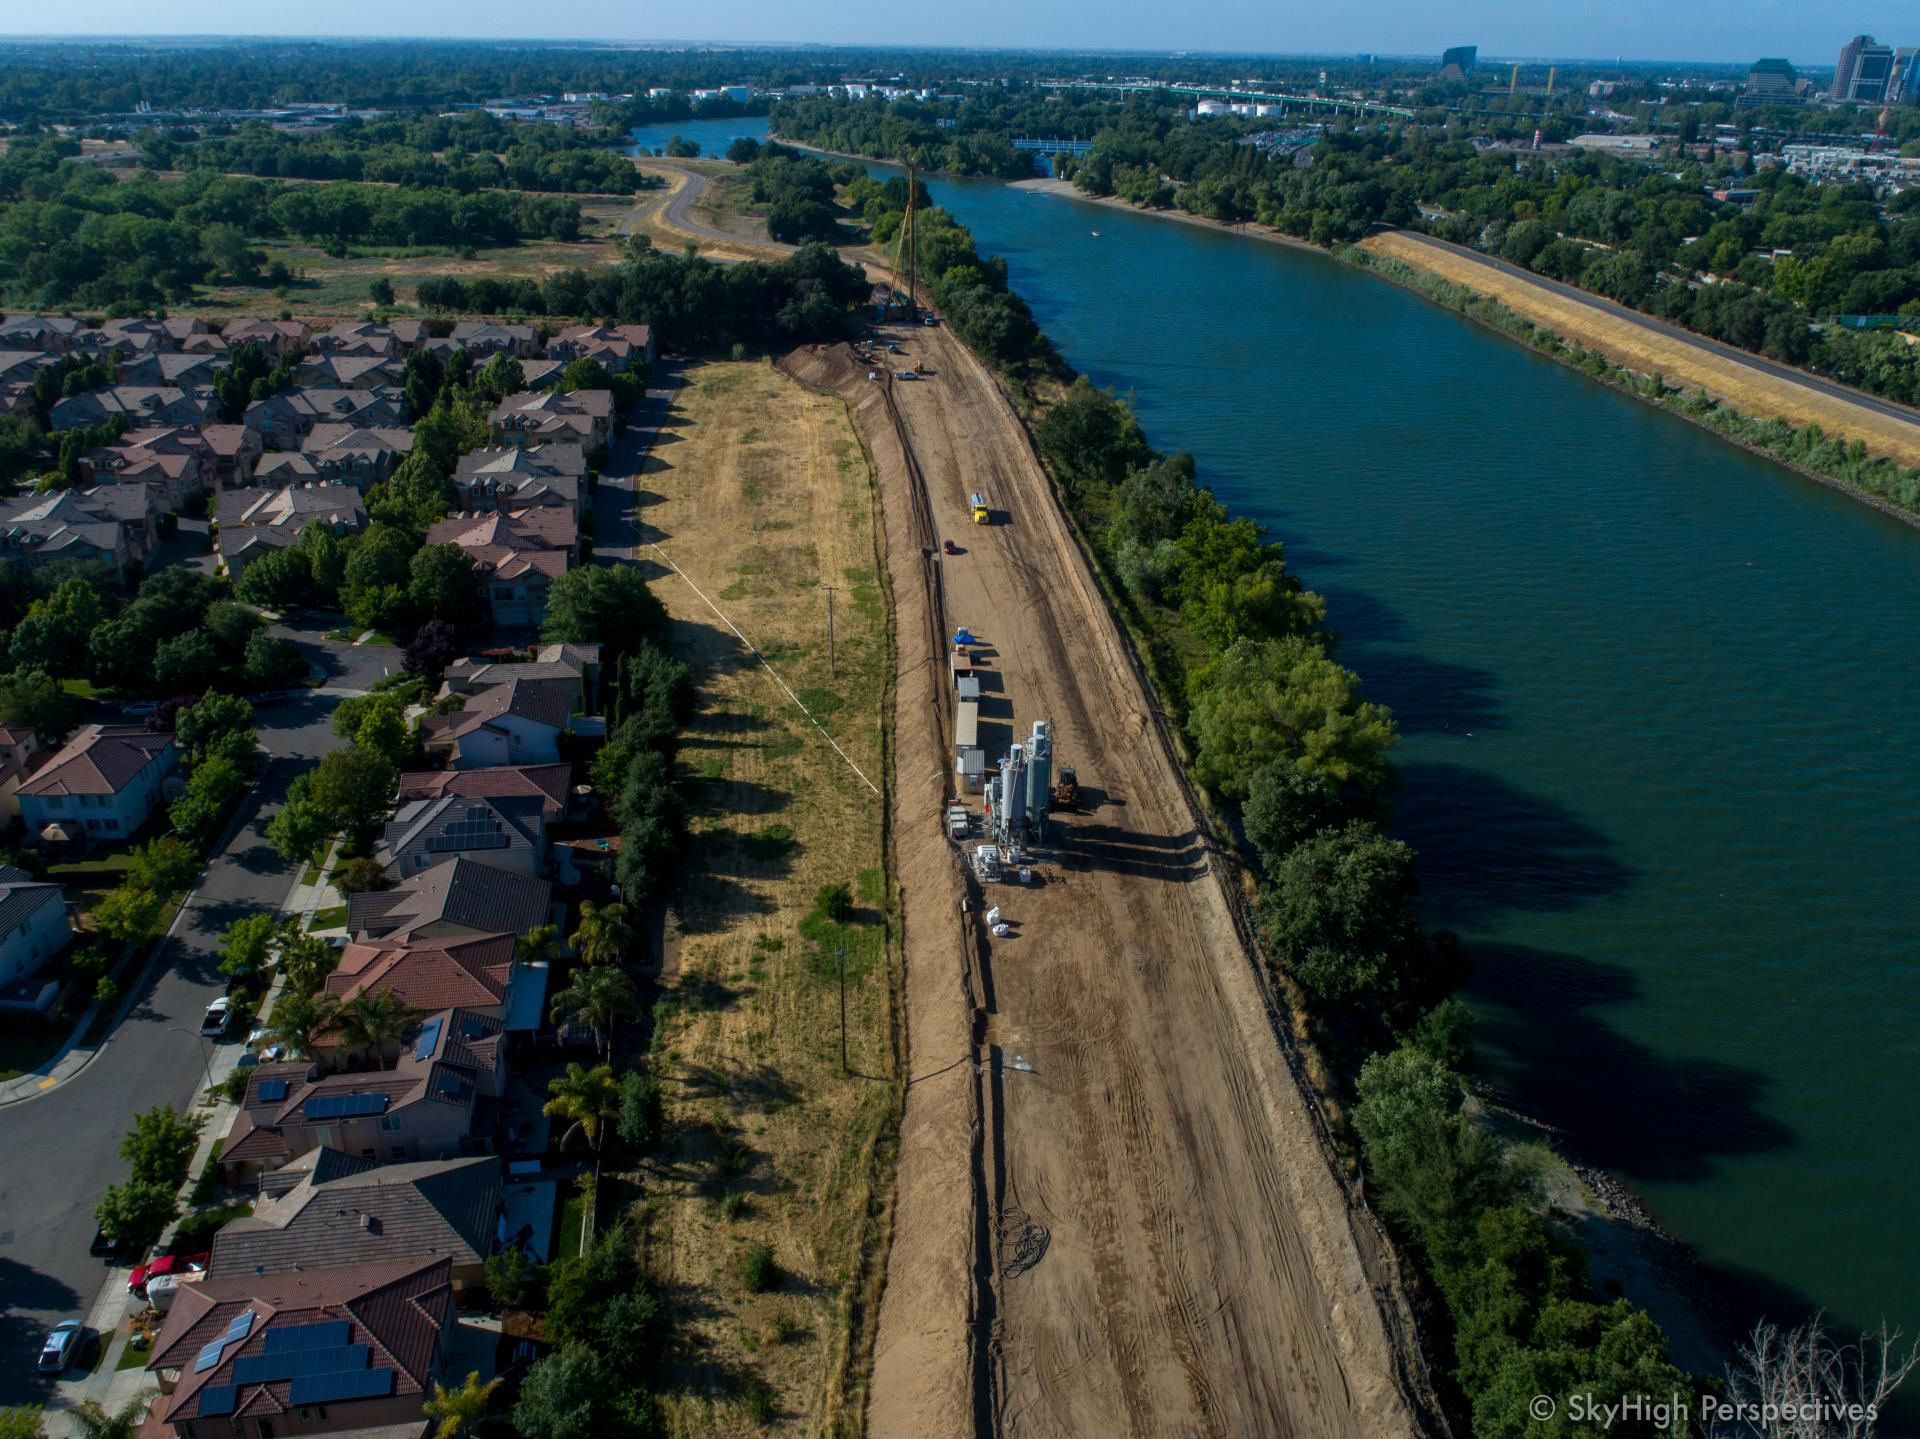 southport levee improvement project drone photo may 22 behind homes